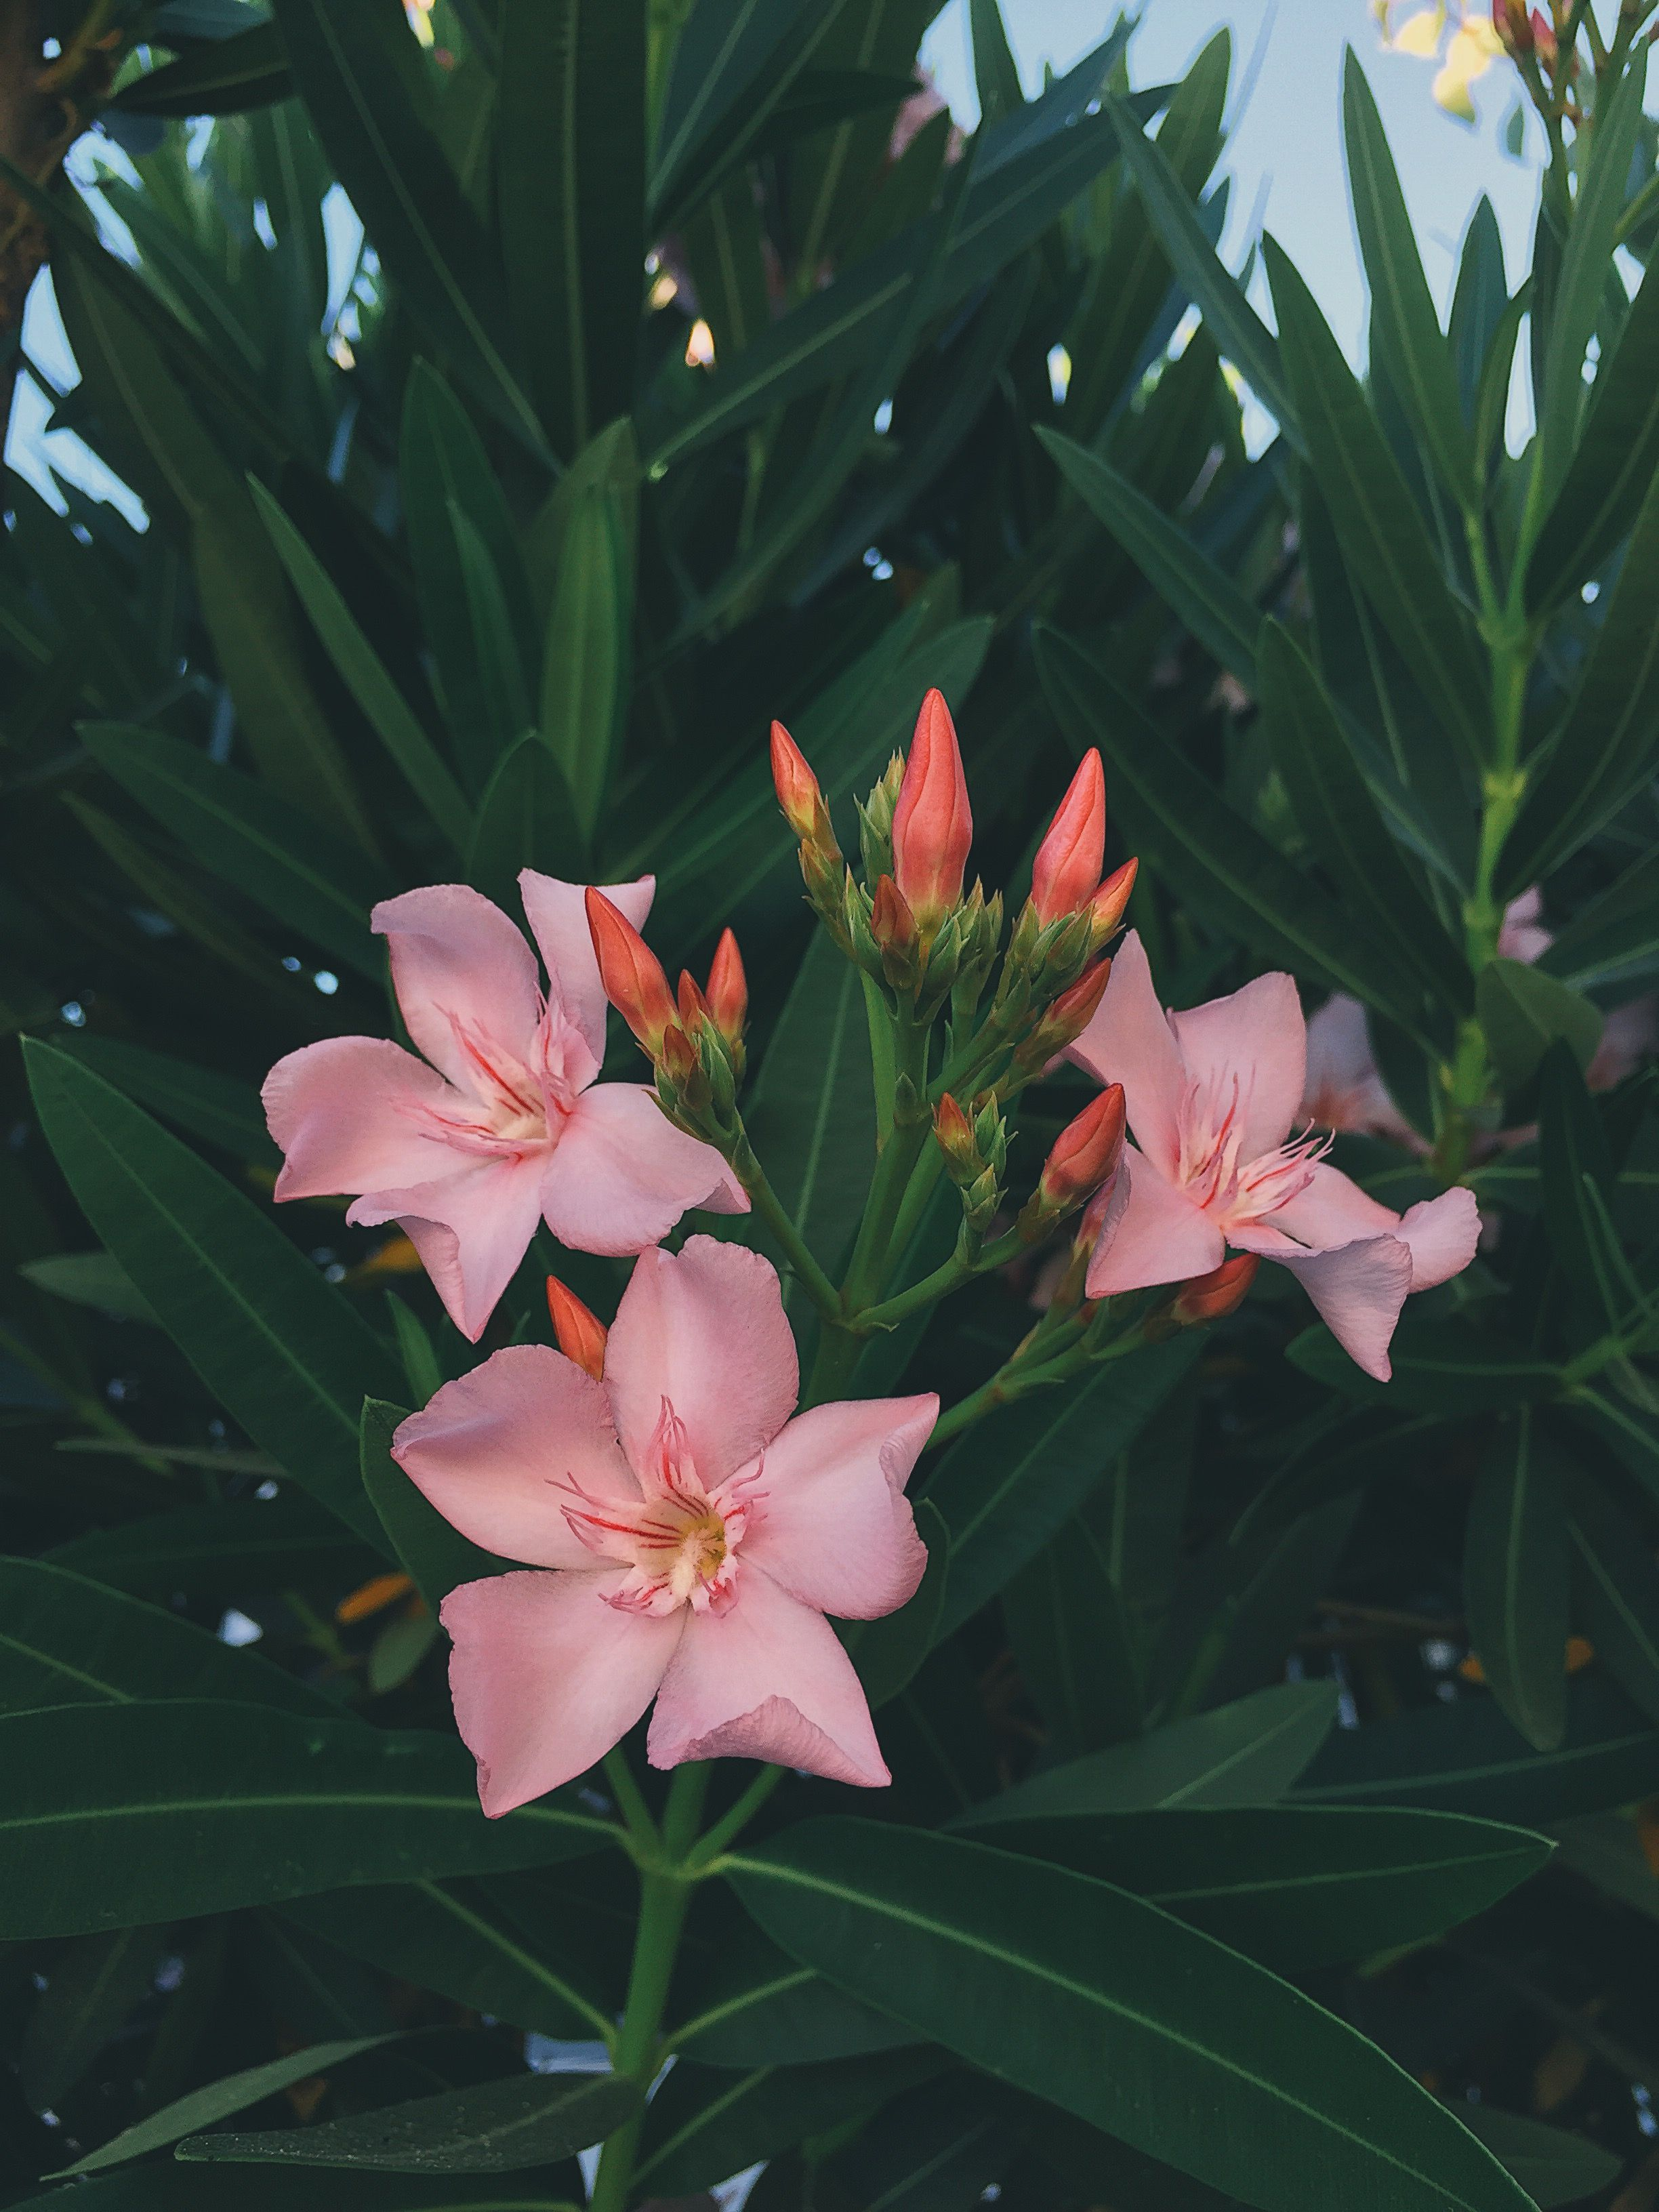 Pink Flowers Aesthetic Nature Vsco Photography Pretty Tumblr Flower Aesthetic Plant Aesthetic Tumblr Flower